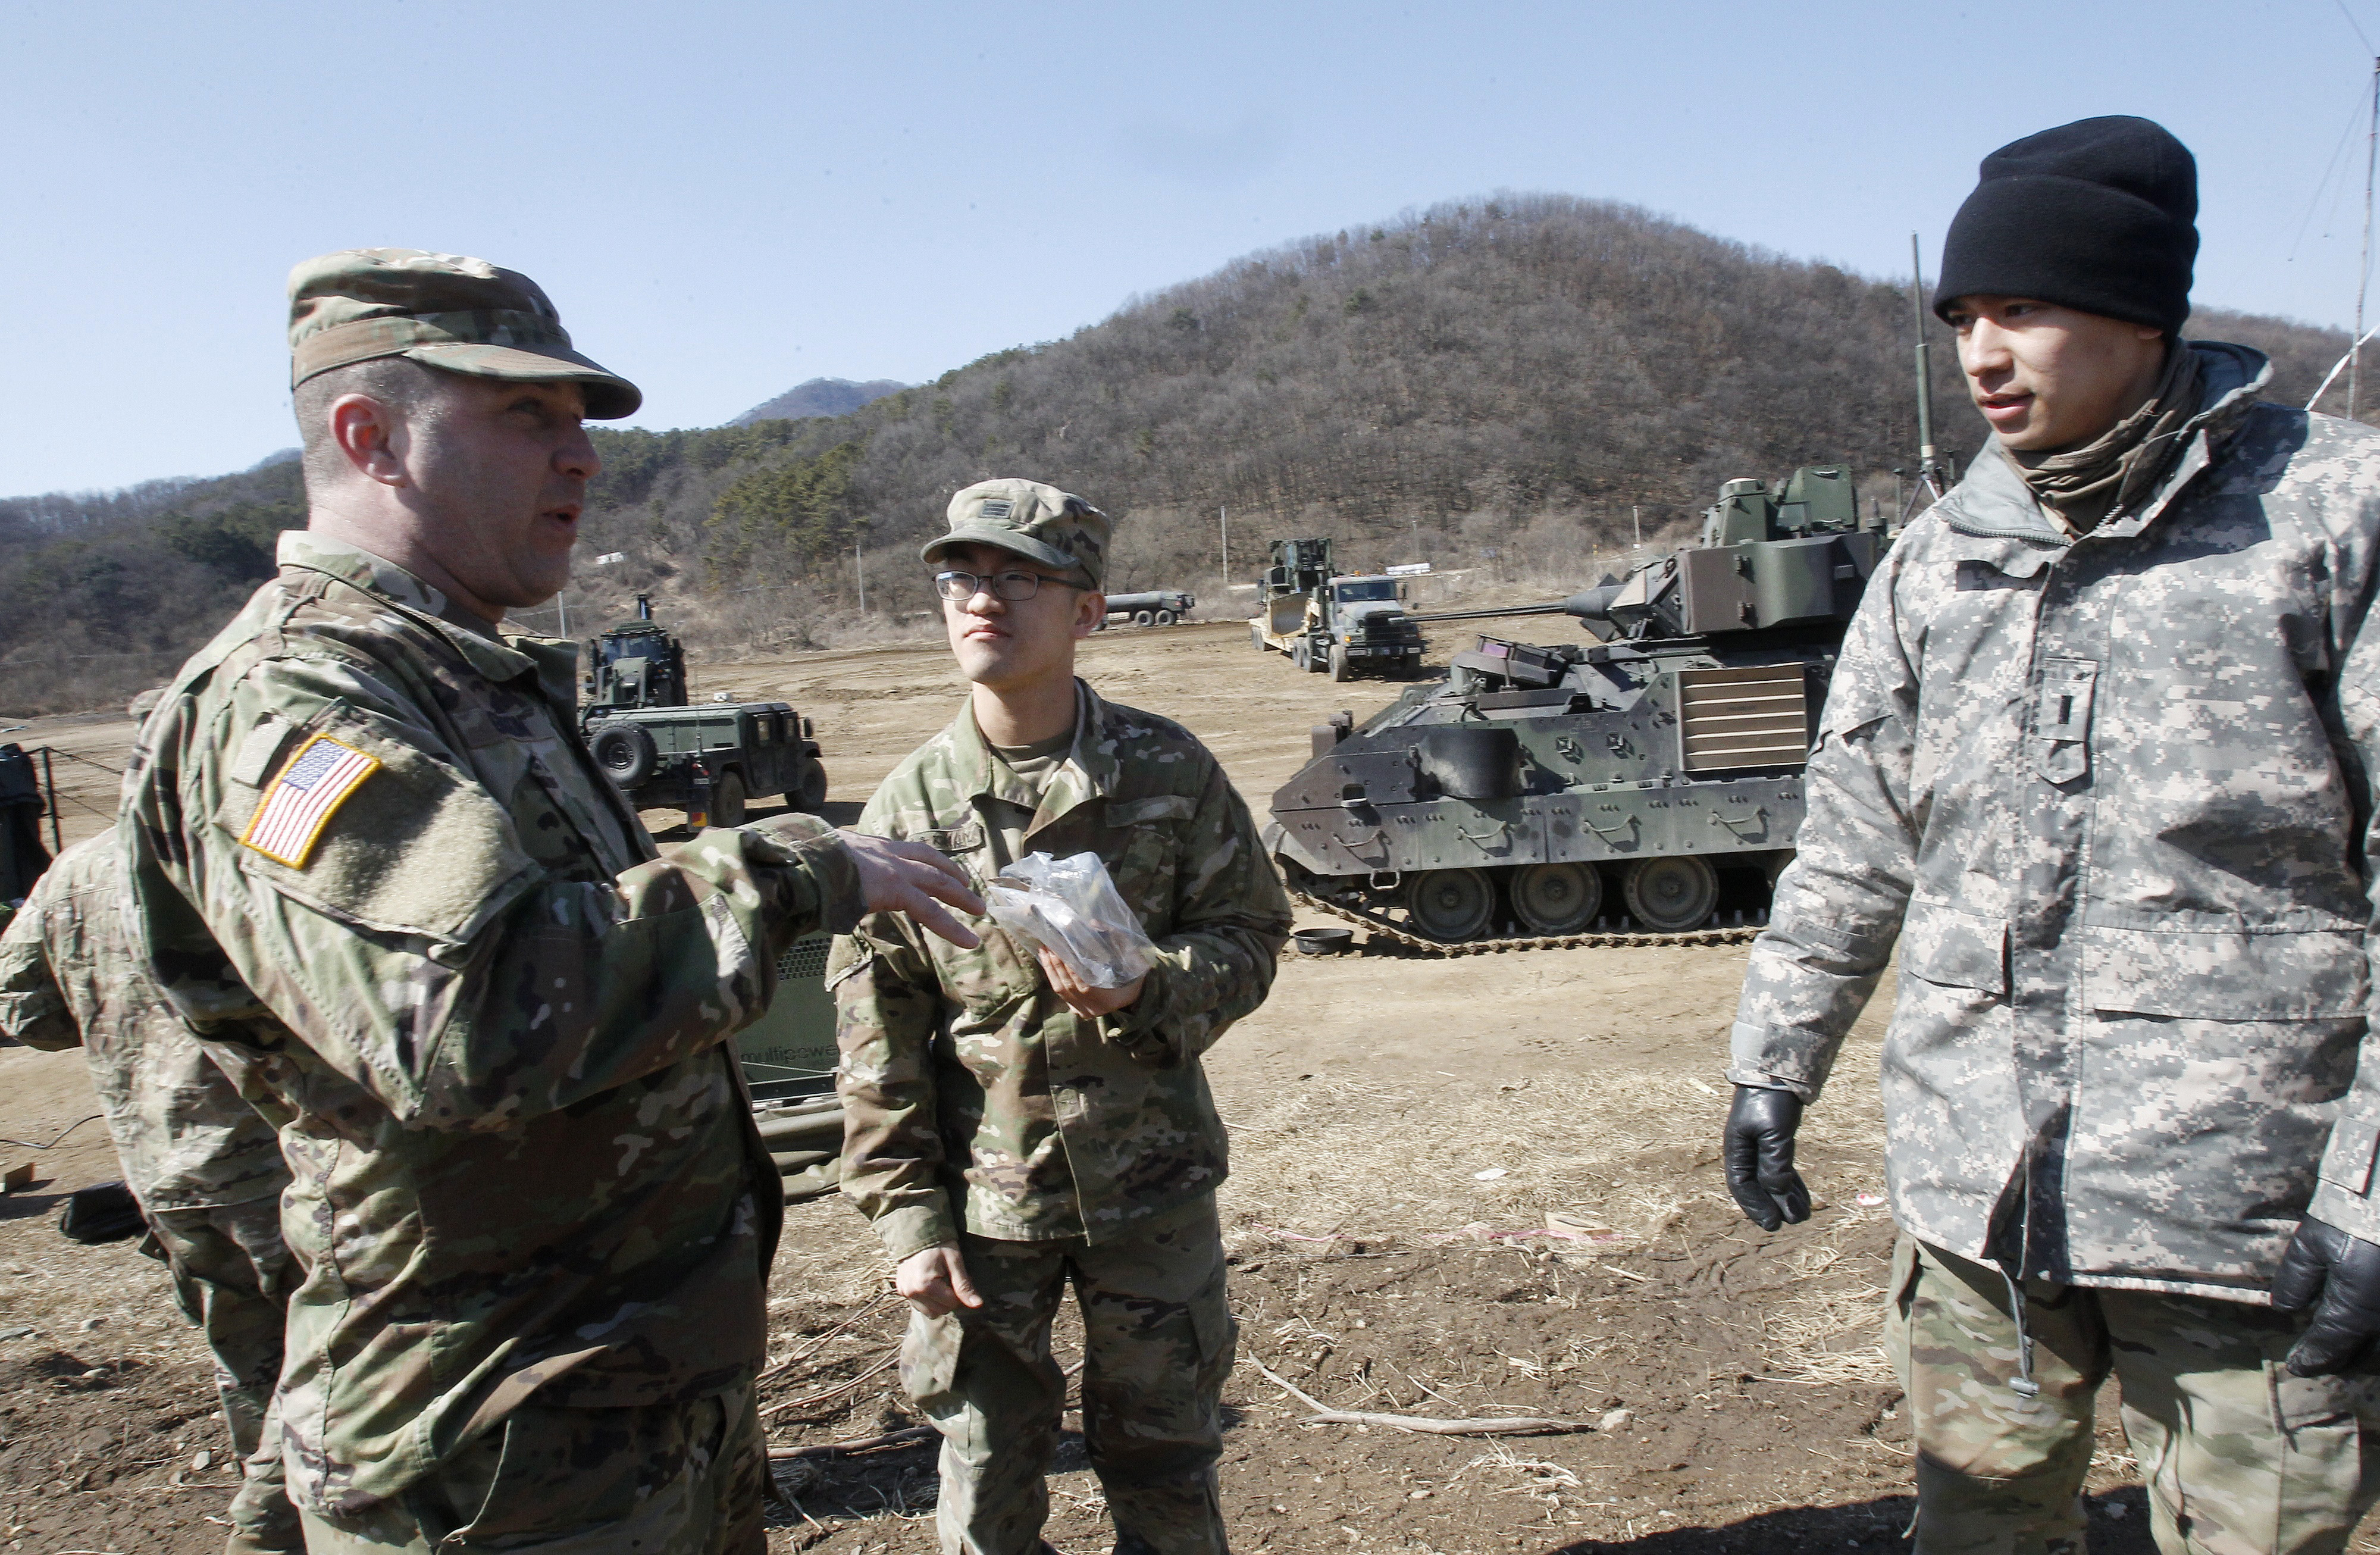 U.S. Army soldiers prepare their military exercise in Paju, near the border with North Korea, South Korea on March 6, 2017. (AP Photo/Ahn Young-joon)